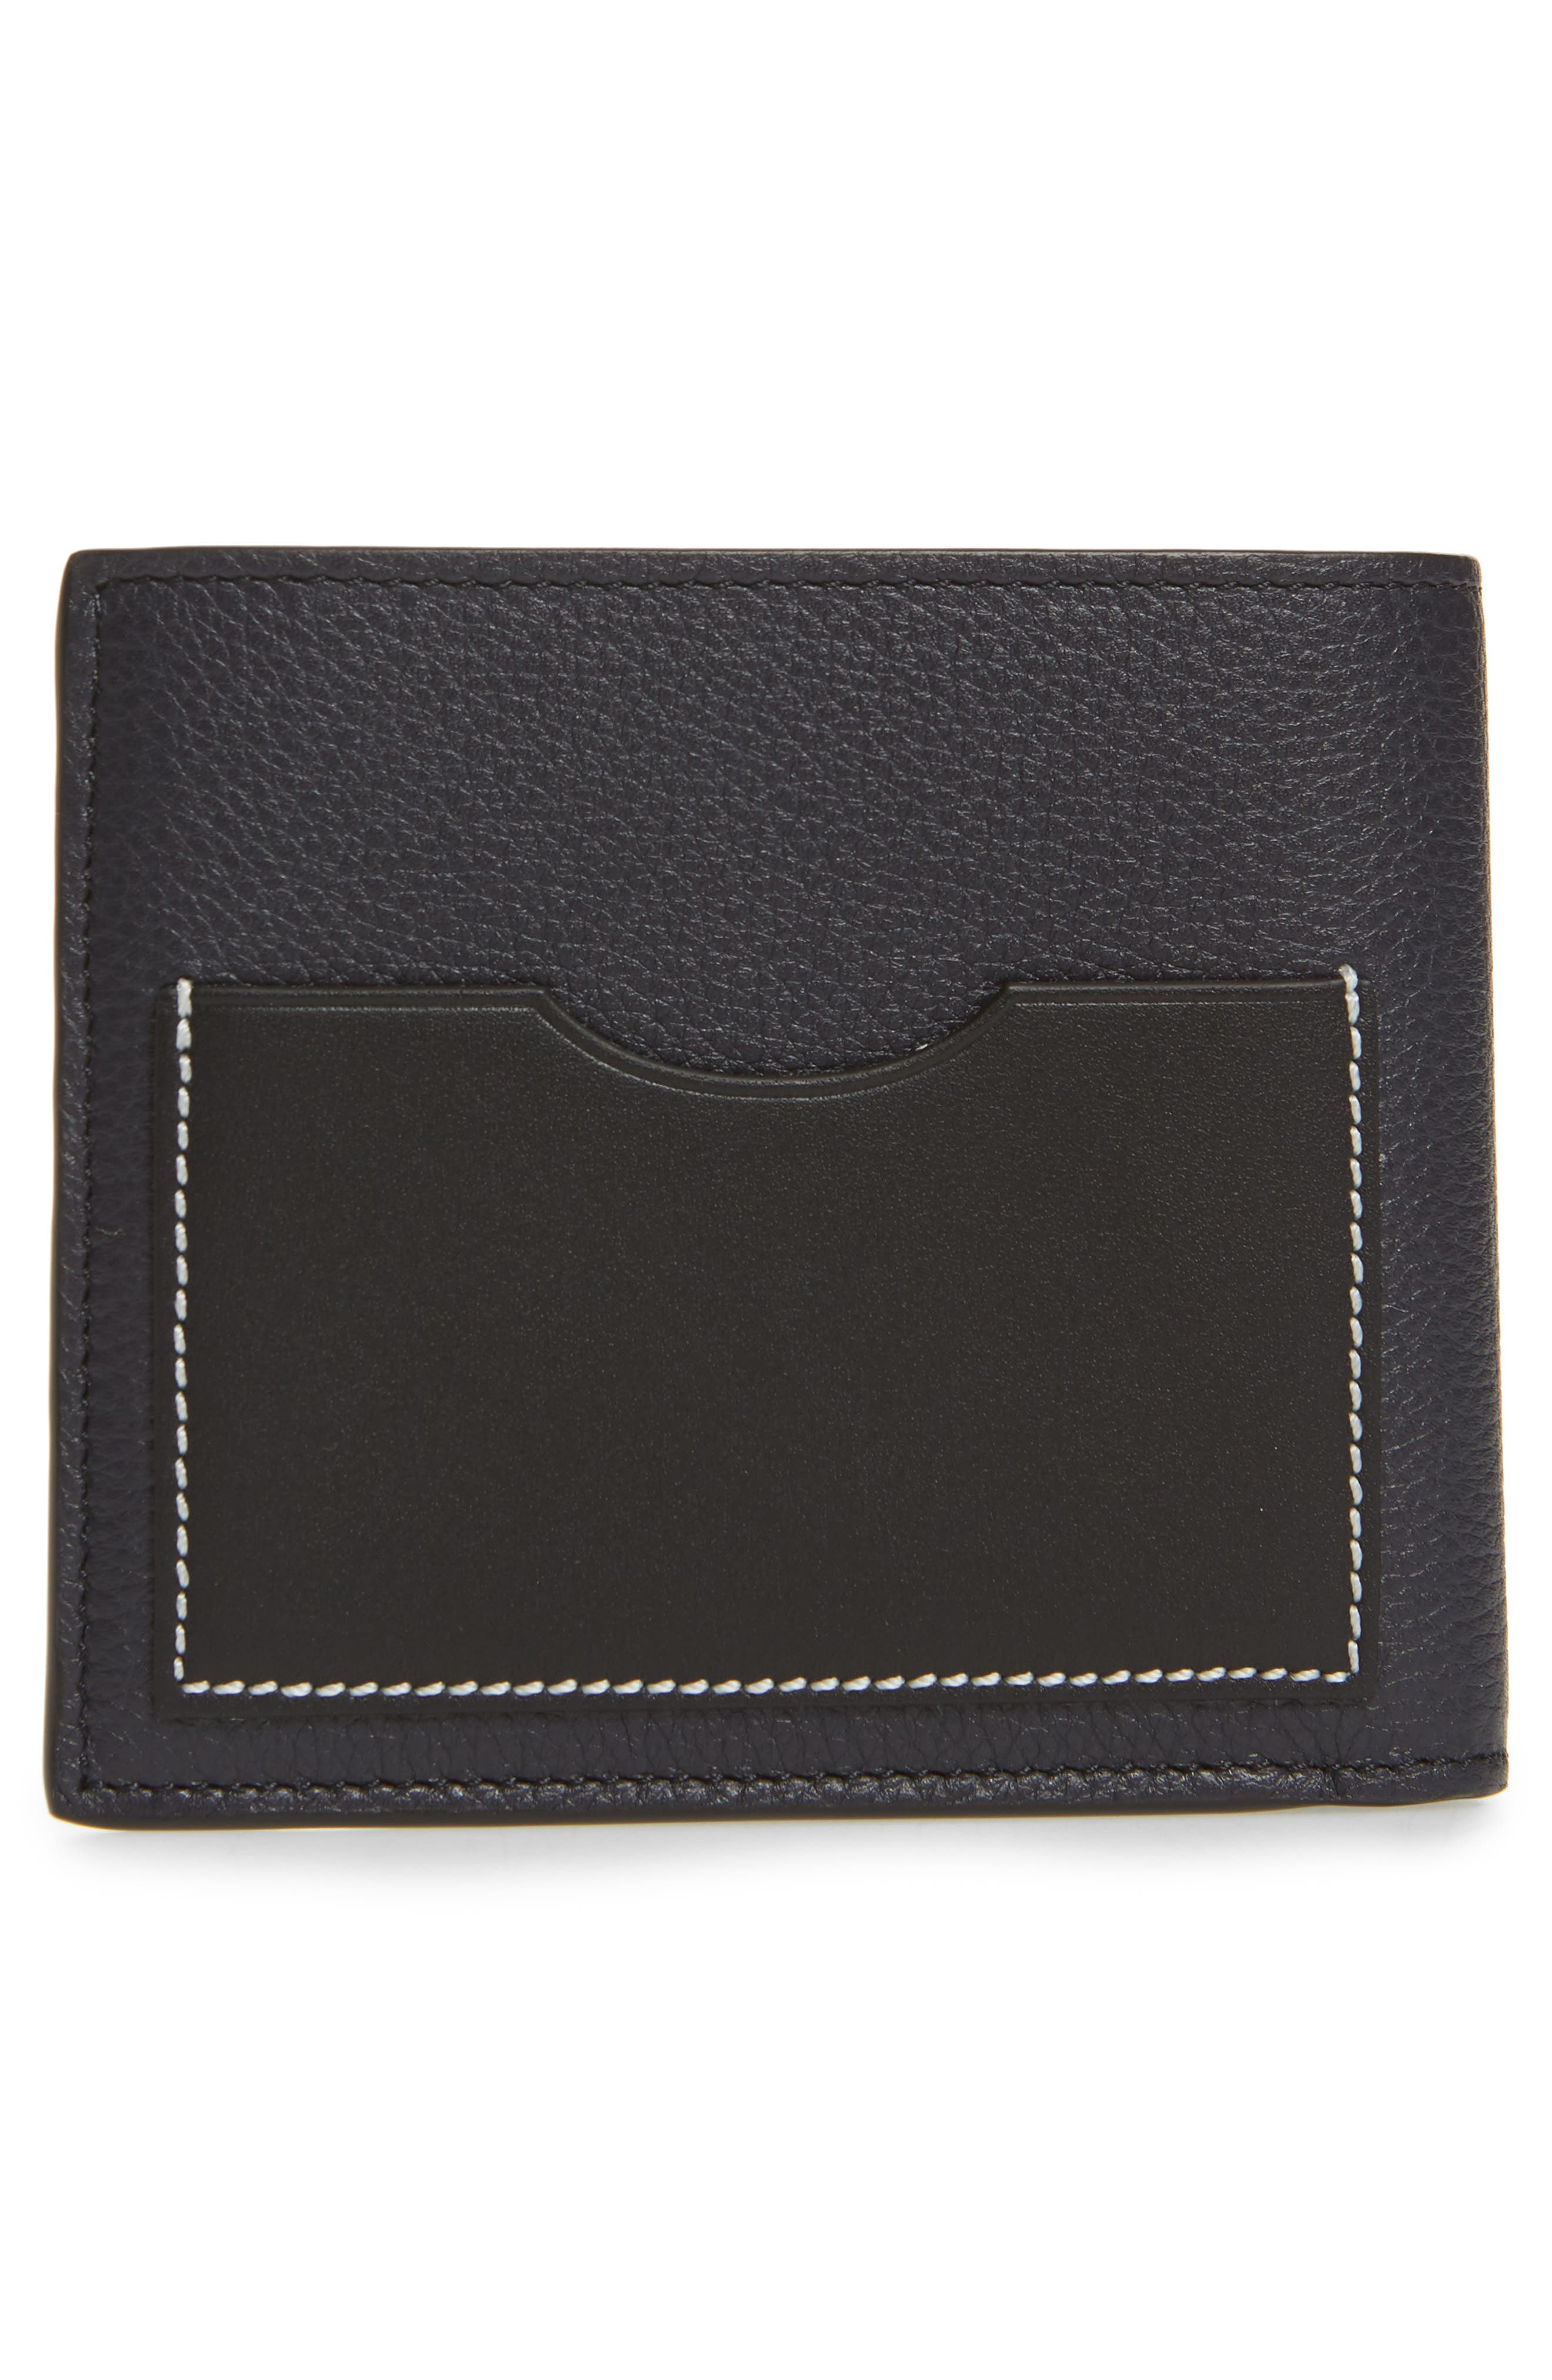 LOEWE, Calfskin Leather Bifold Wallet, Alternate thumbnail 3, color, MIDNIGHT